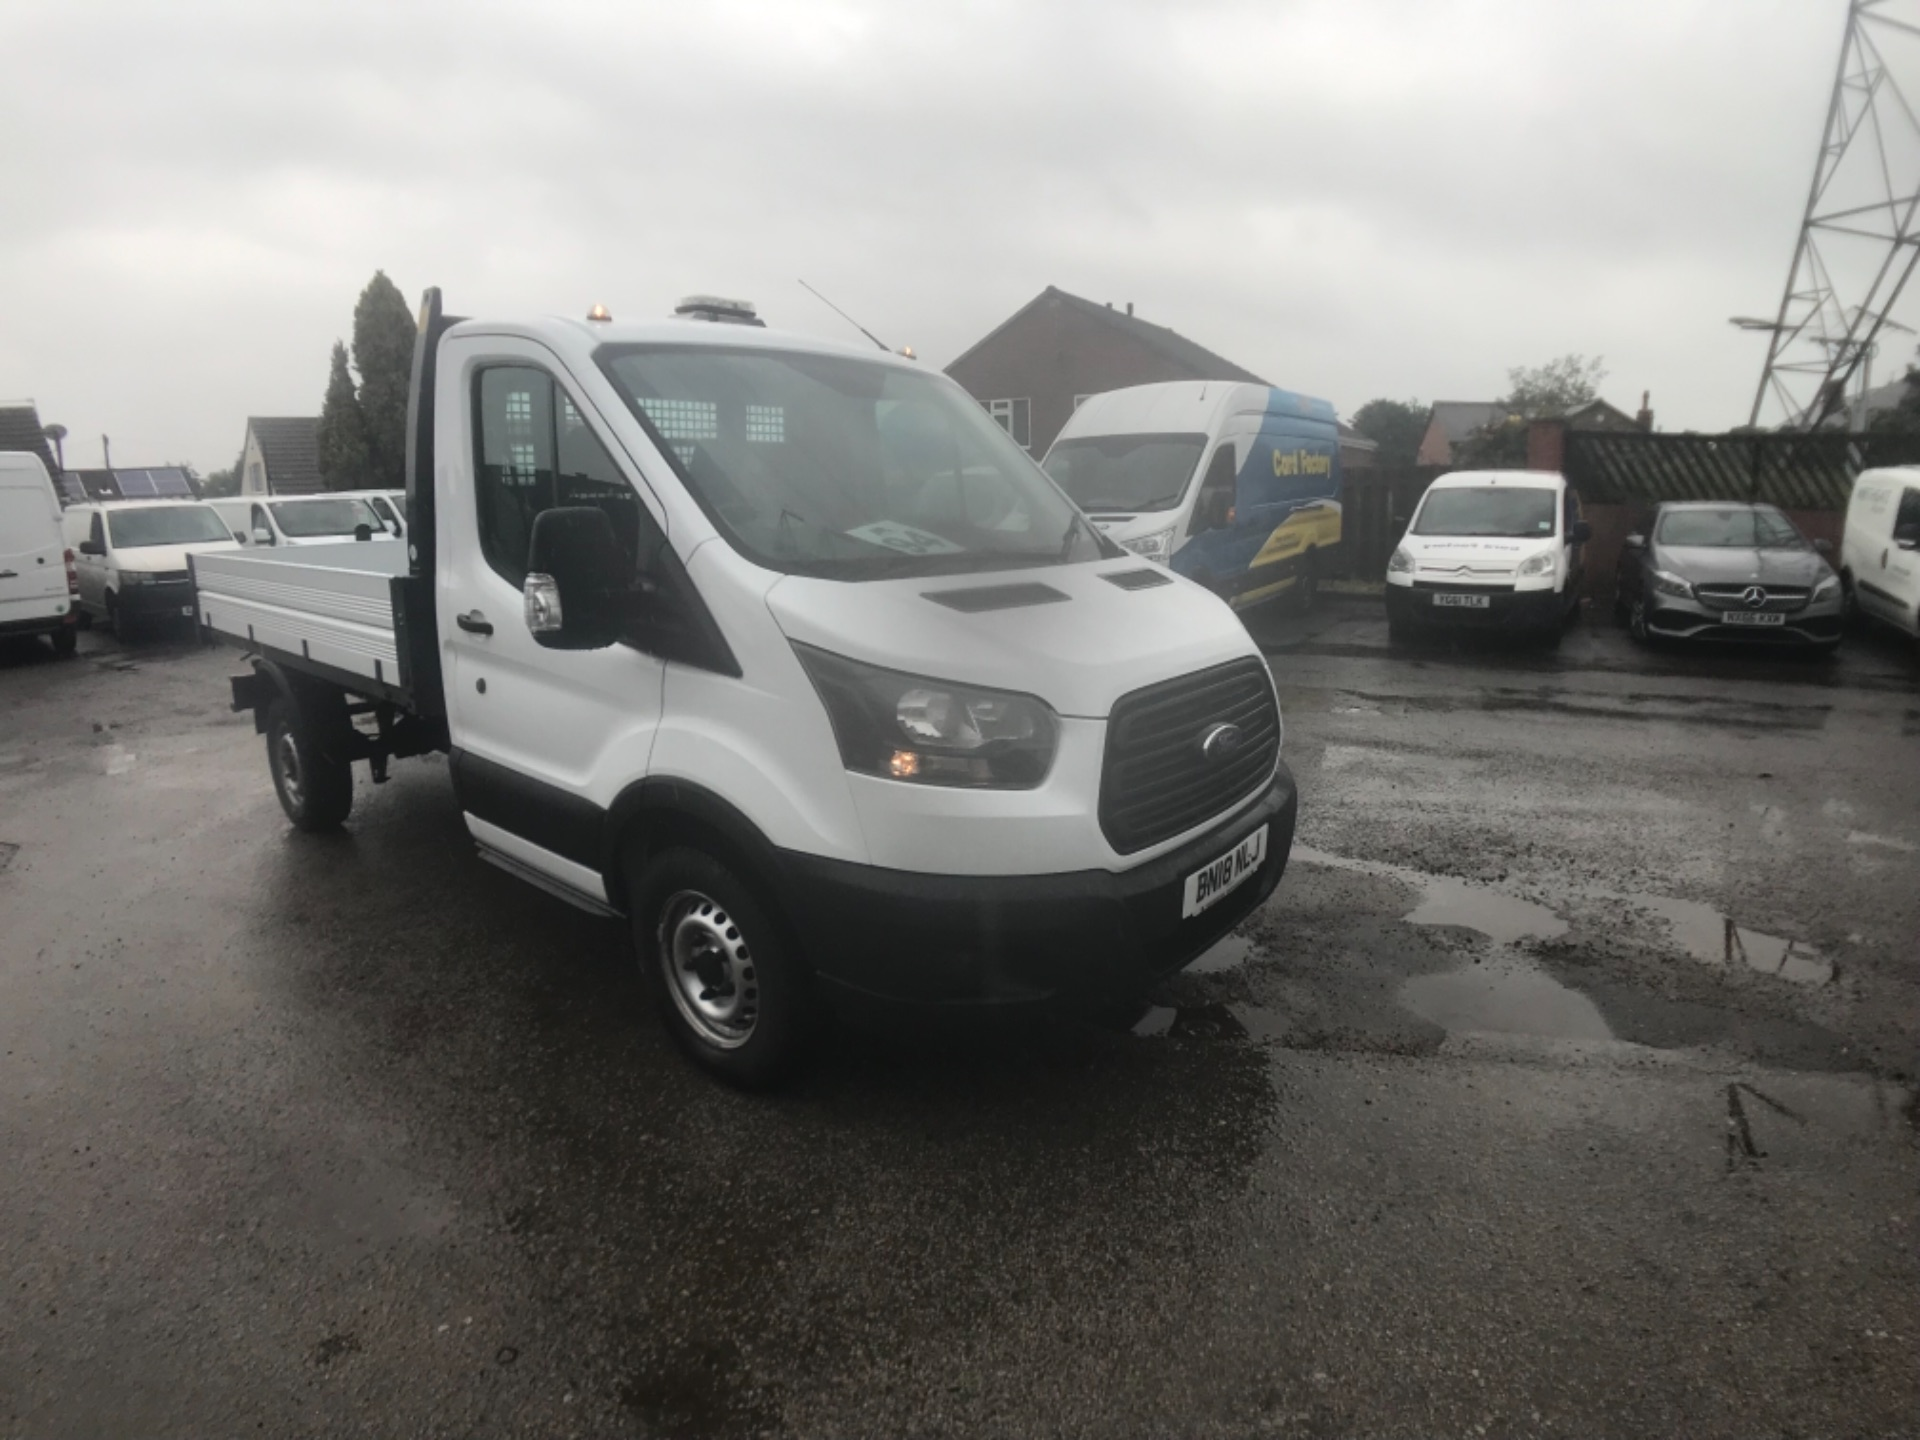 2018 Ford Transit 2.0 Tdci 130Ps 'One Stop' Tipper [1 Way] Single Cab EURO 6 (BN18NLJ)